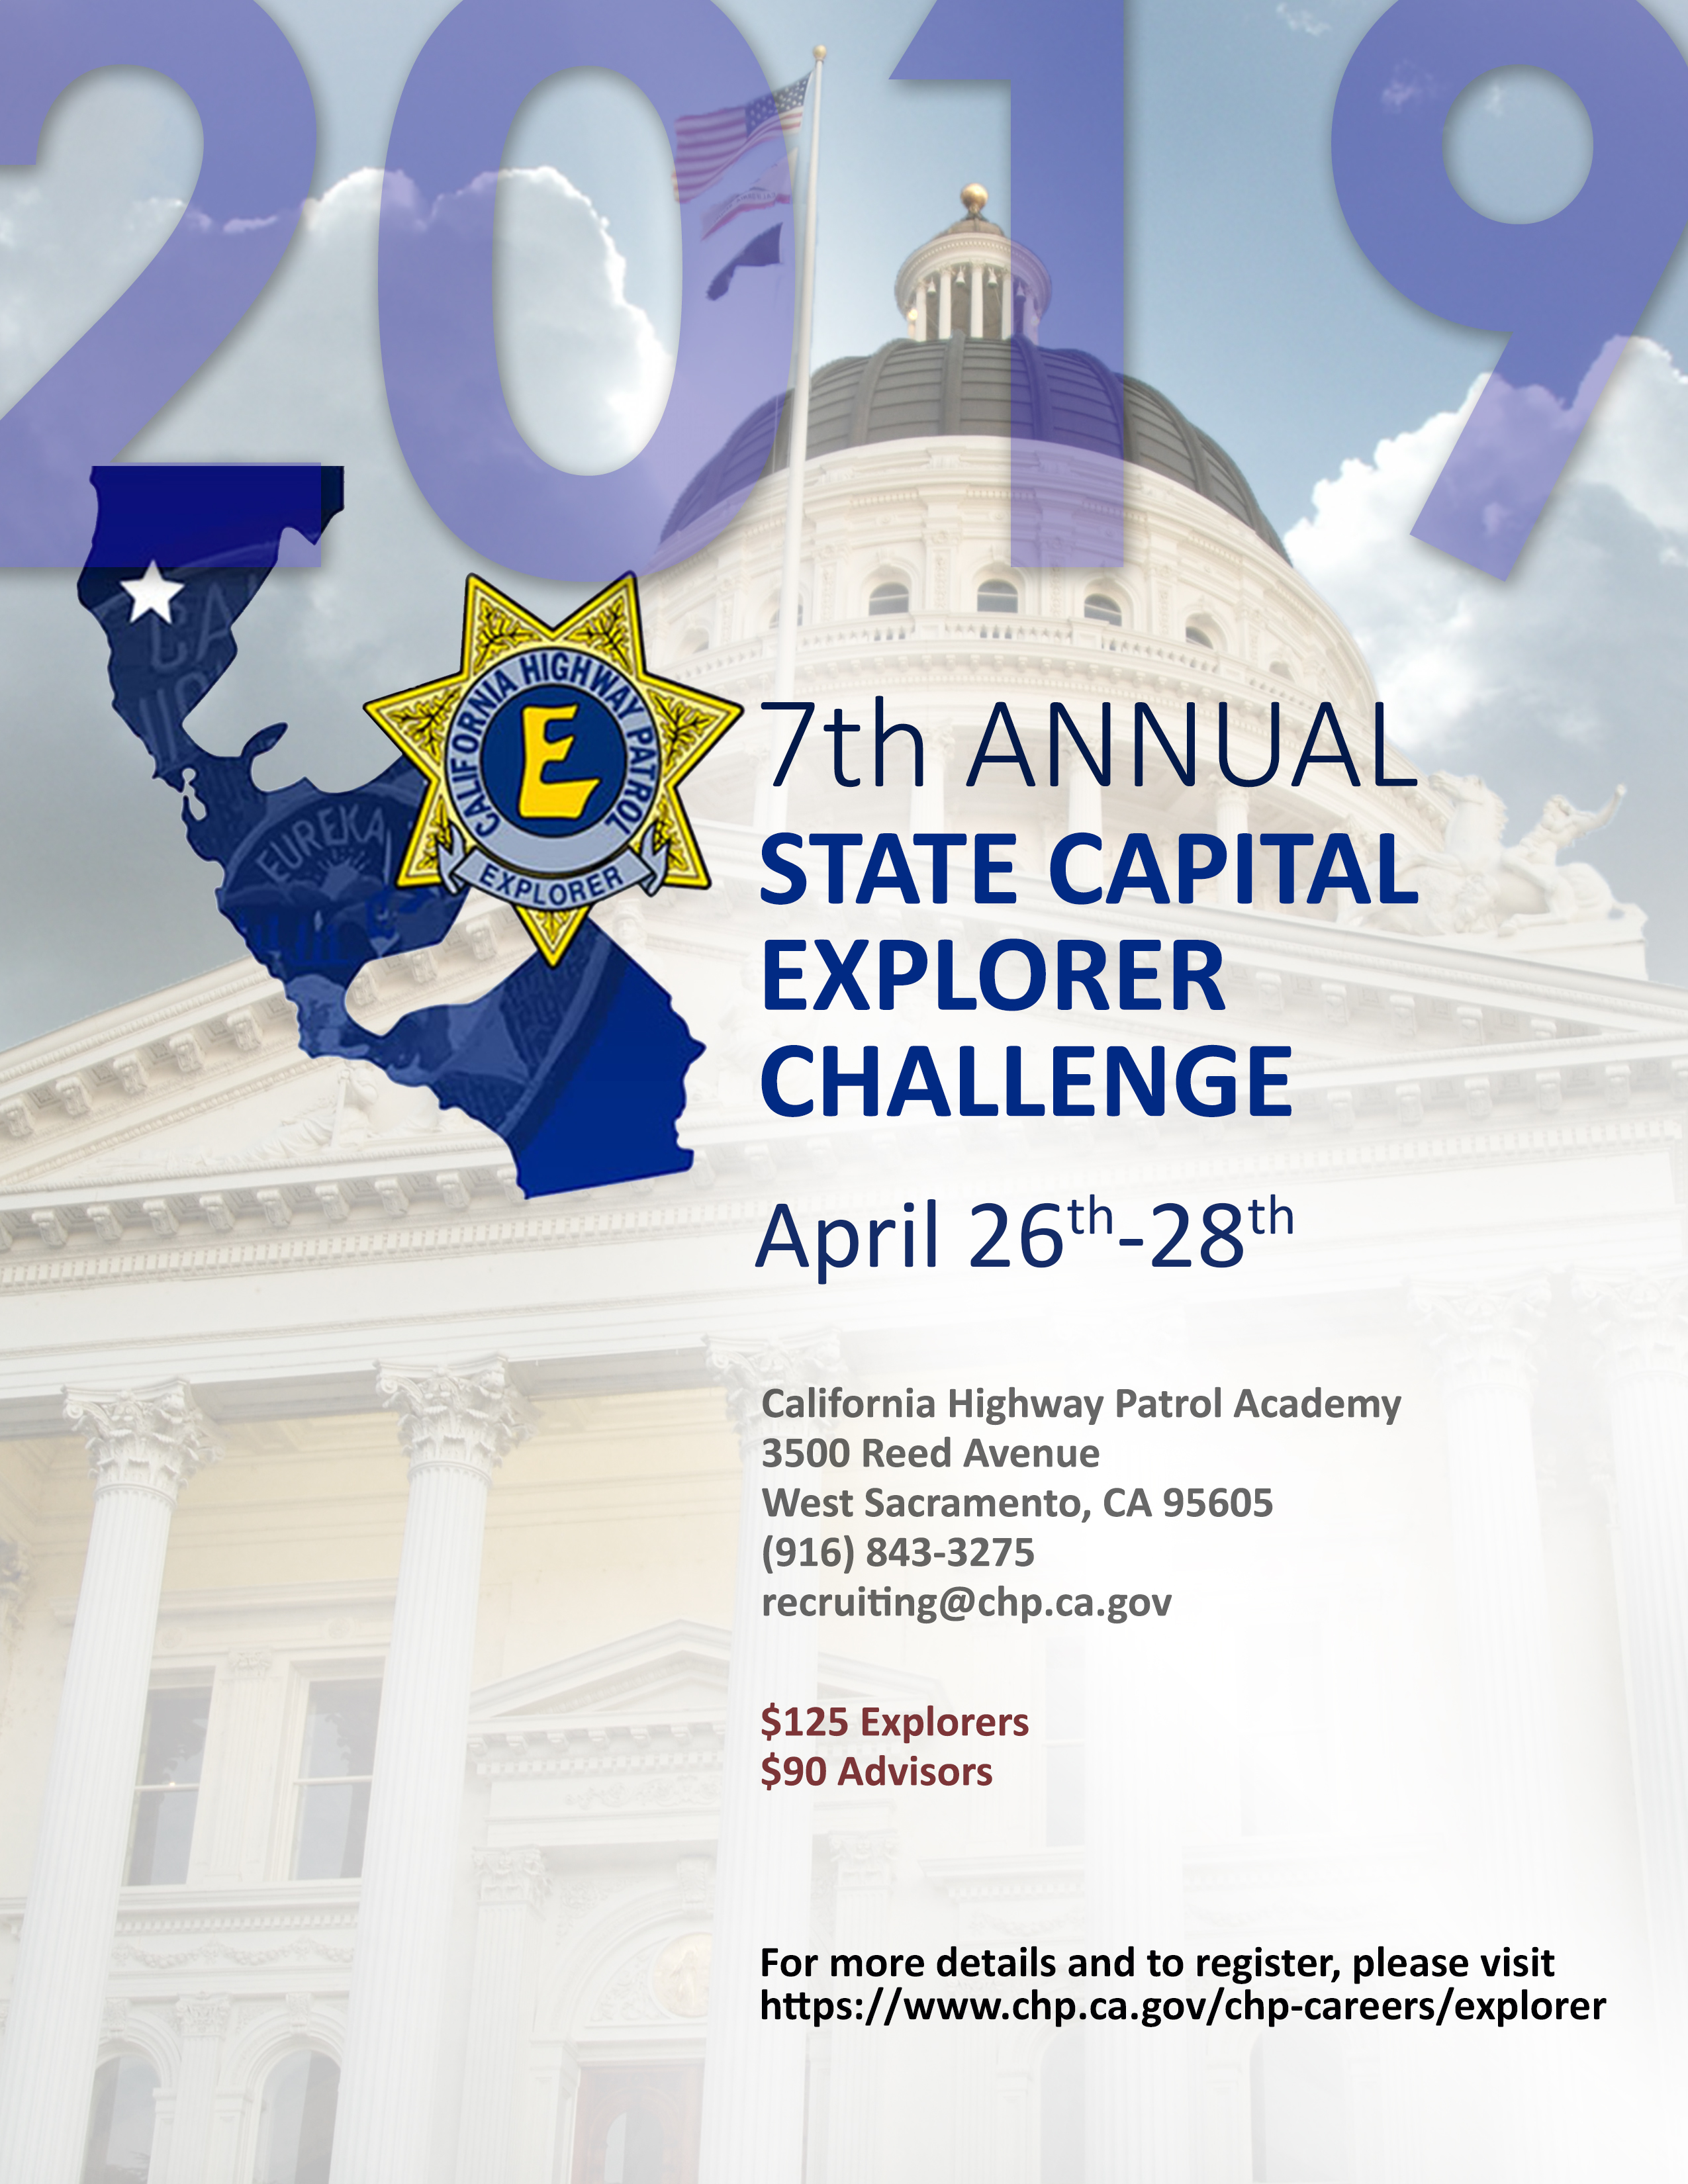 The 7th Annual State Capital Explorer Challenge's Poster